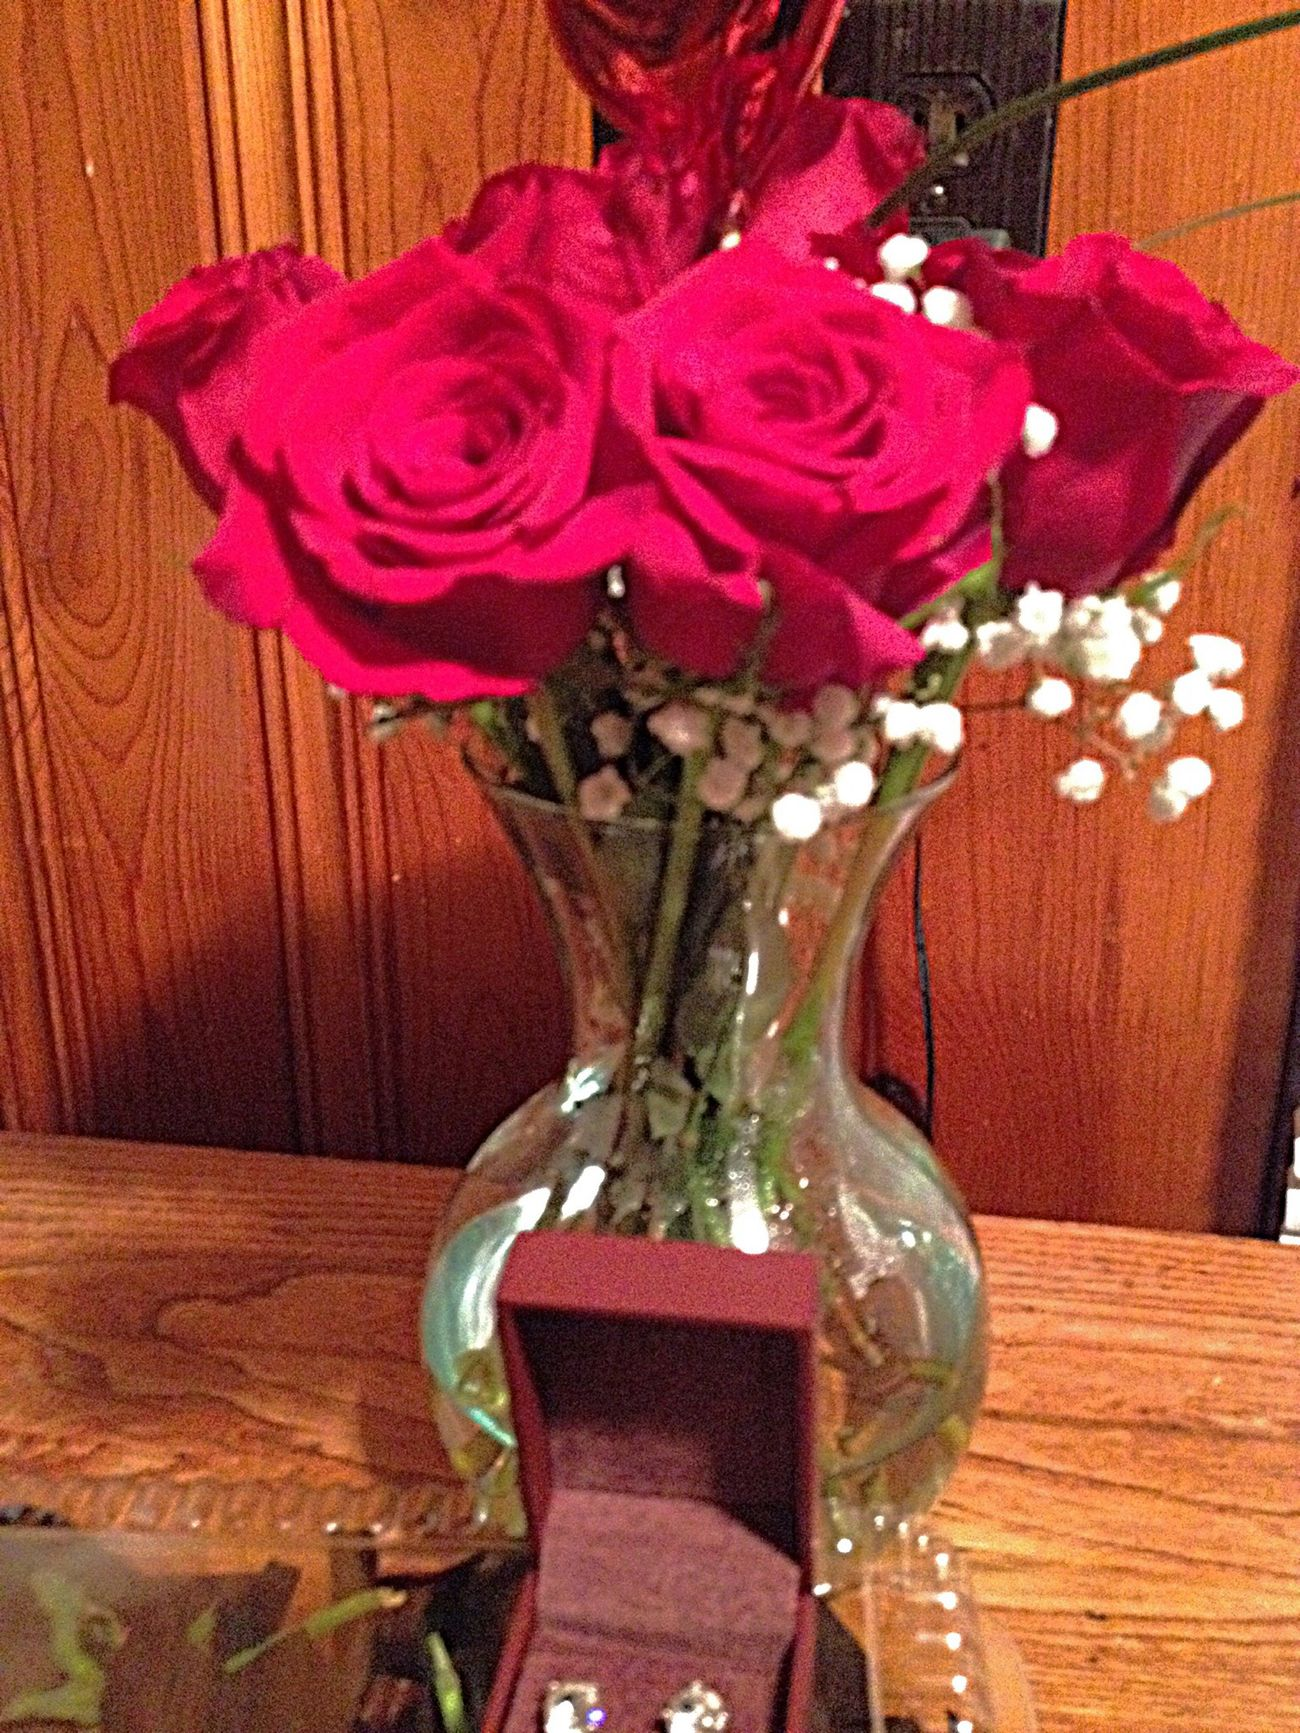 Red Roses Happy V♥Day Everyone or Single Awareness Day